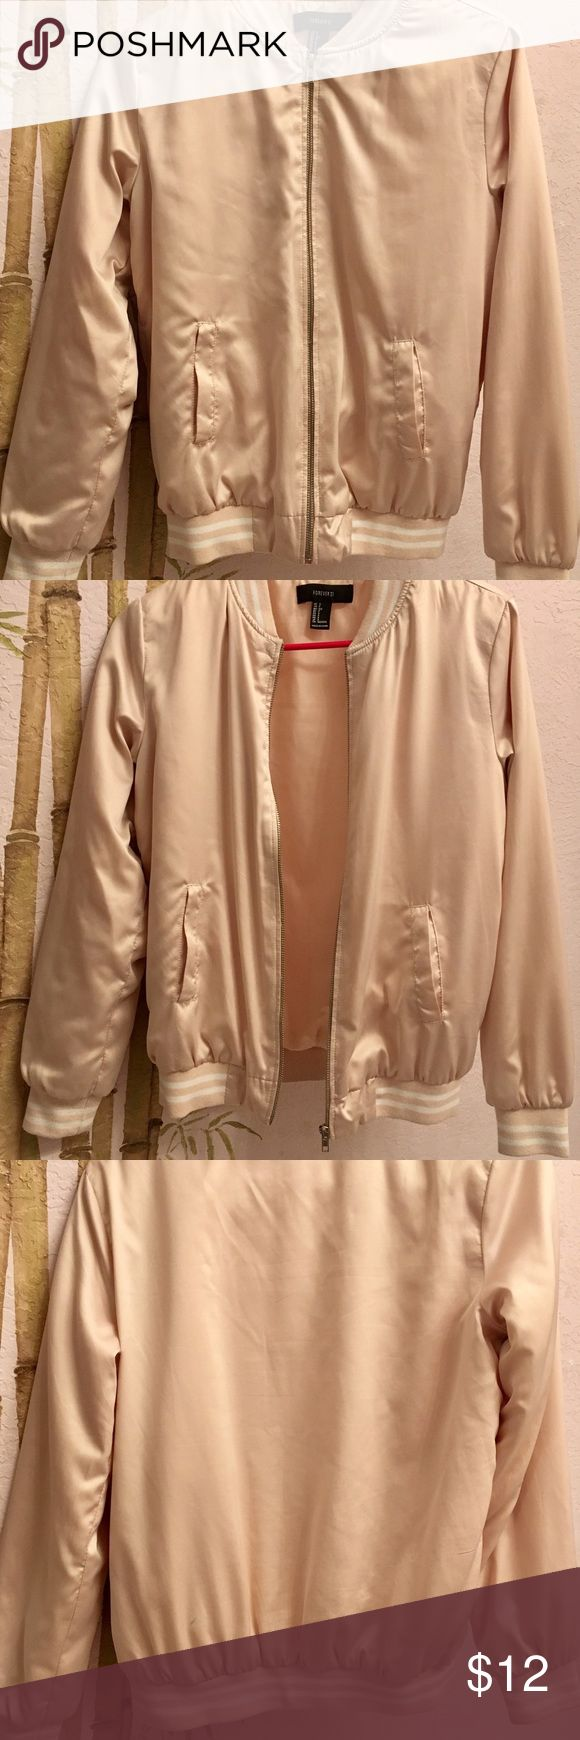 Rose gold Bomber Jacket This Light Pink Bomber Jacket is silky but warm and would be a great addition to any closet! Only imperfection is a small blue mark on the back but this is very unnoticeable when worn. Offers Welcome! Forever 21 Jackets & Coats